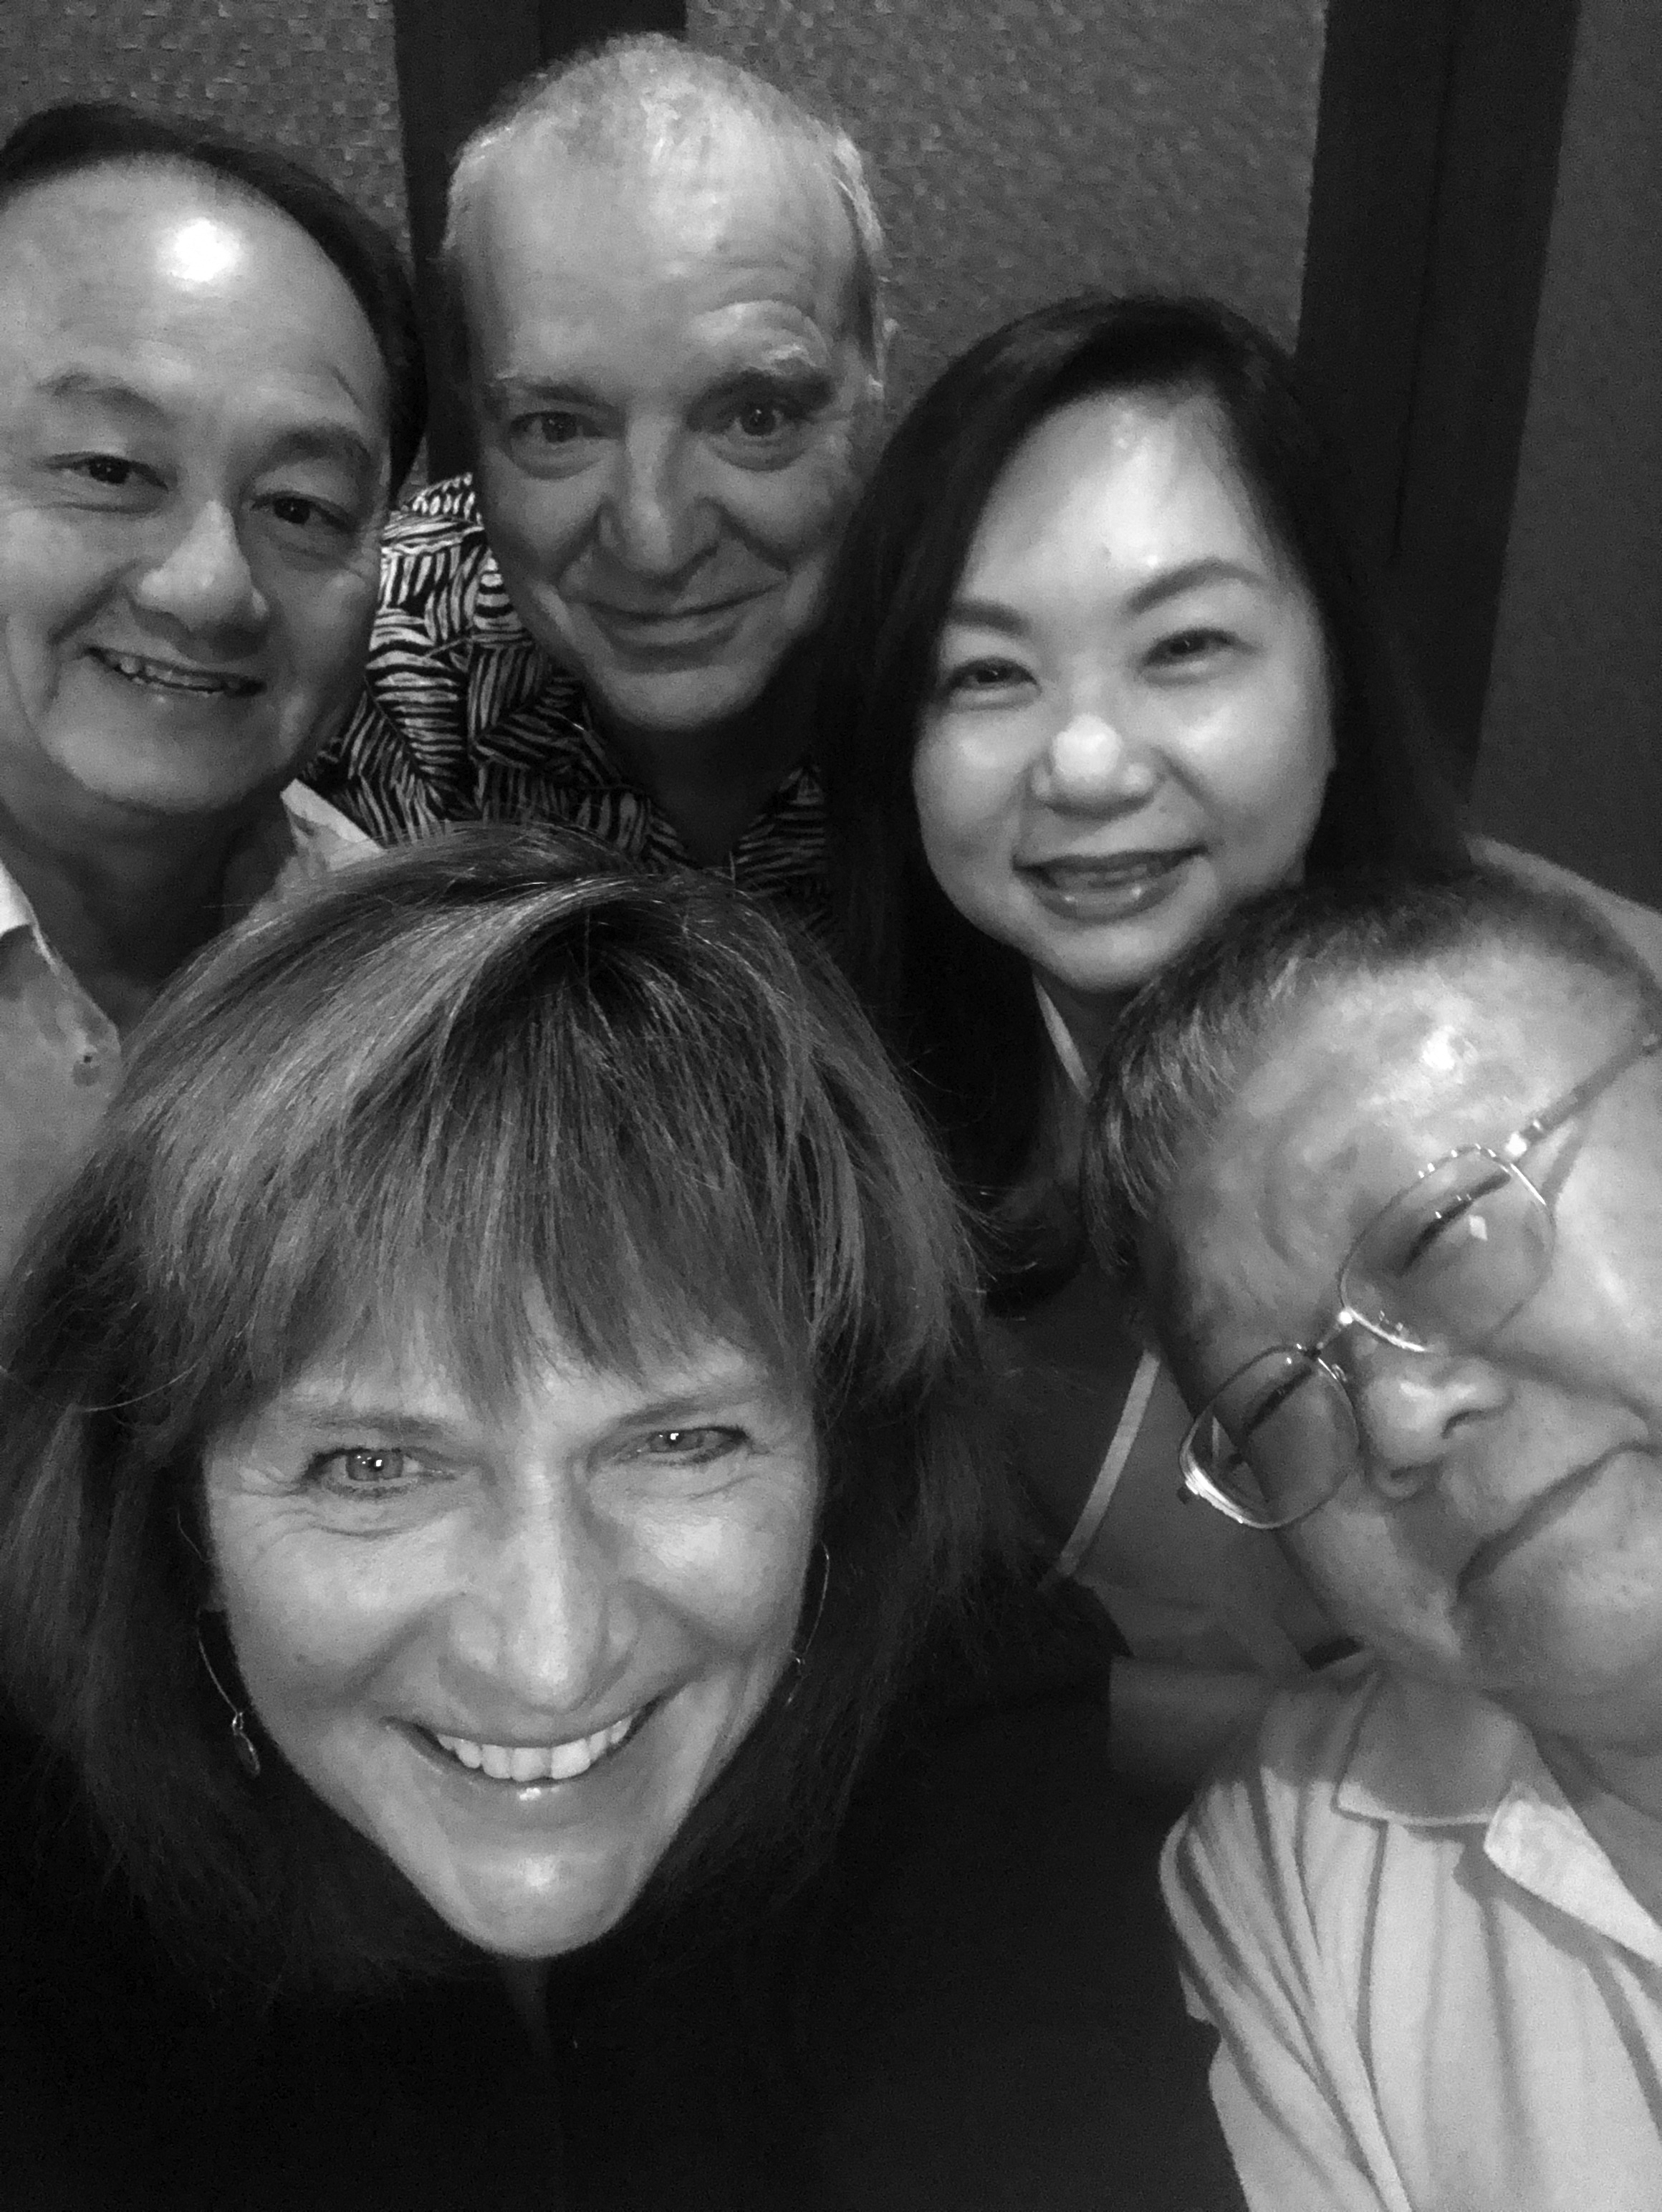 IMG_0490_selfie_dinner YI family_bw